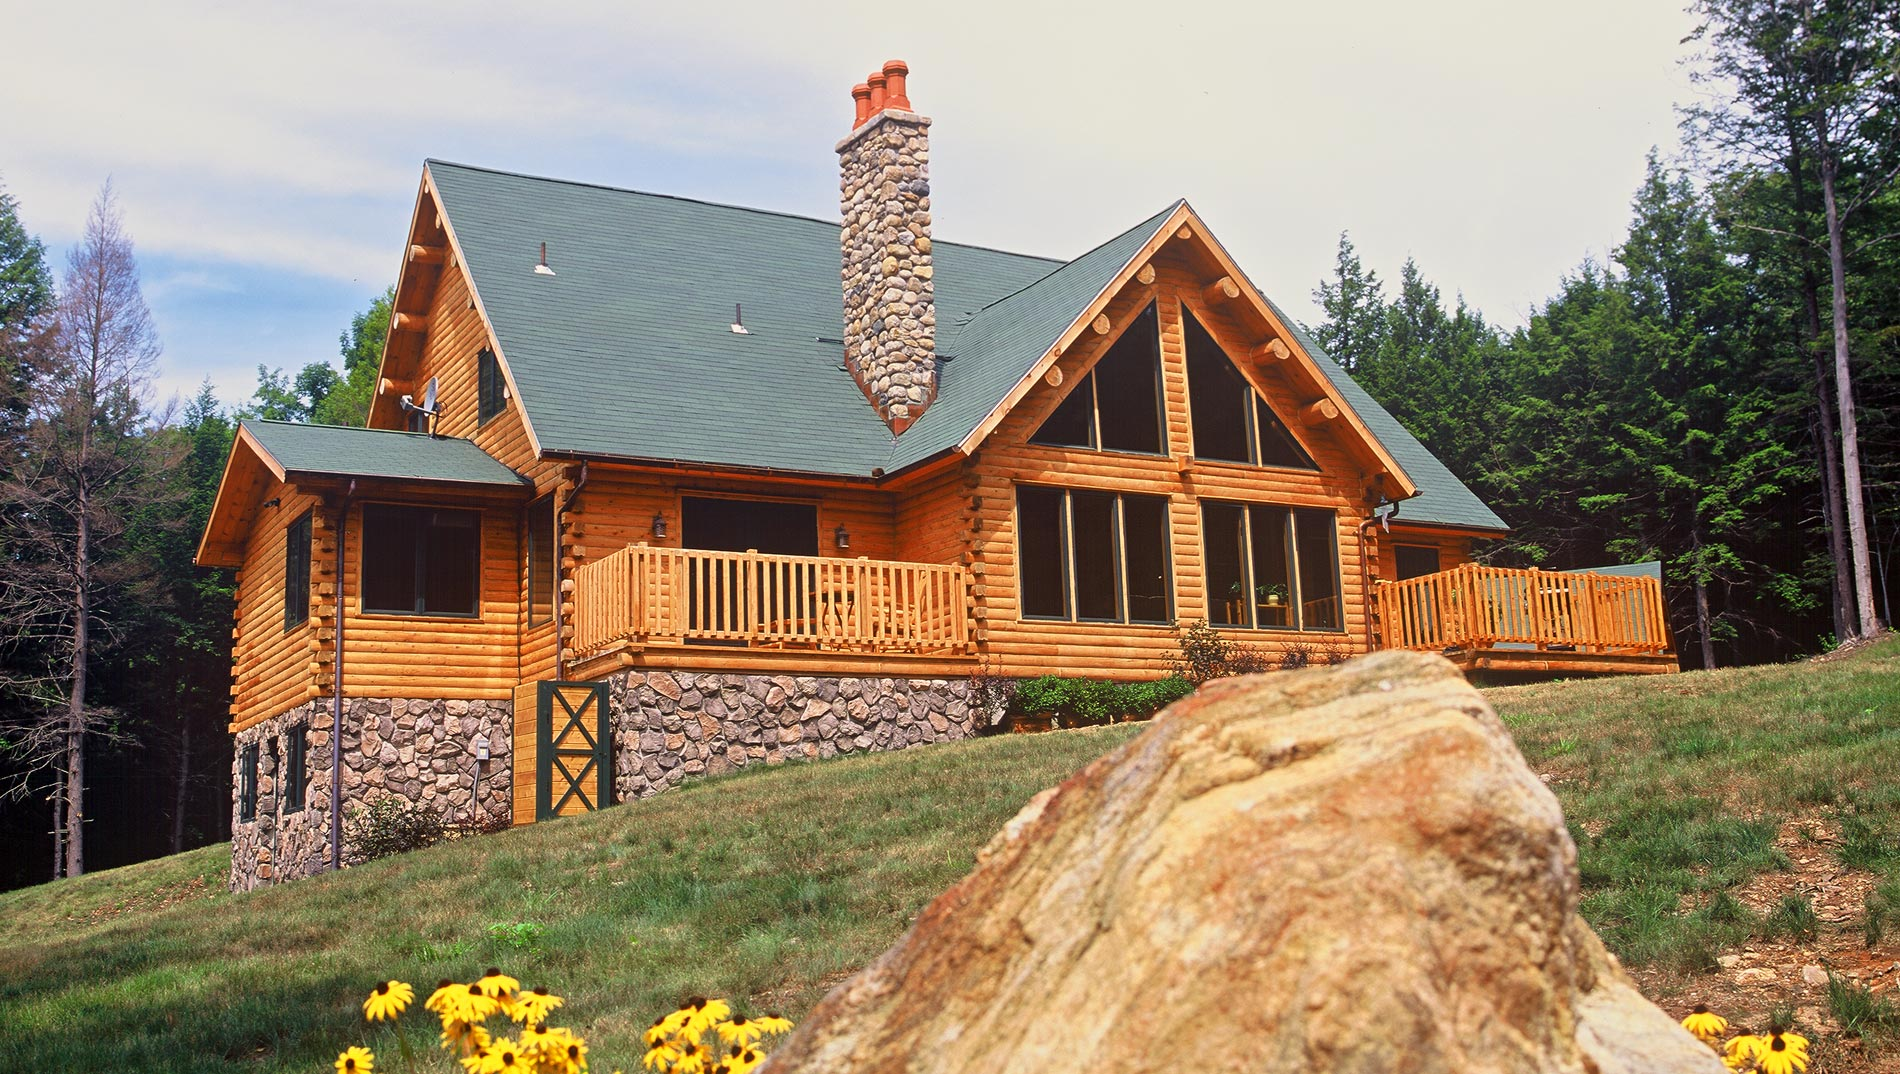 Ward cedar log homes log homes and log cabin kits for House log